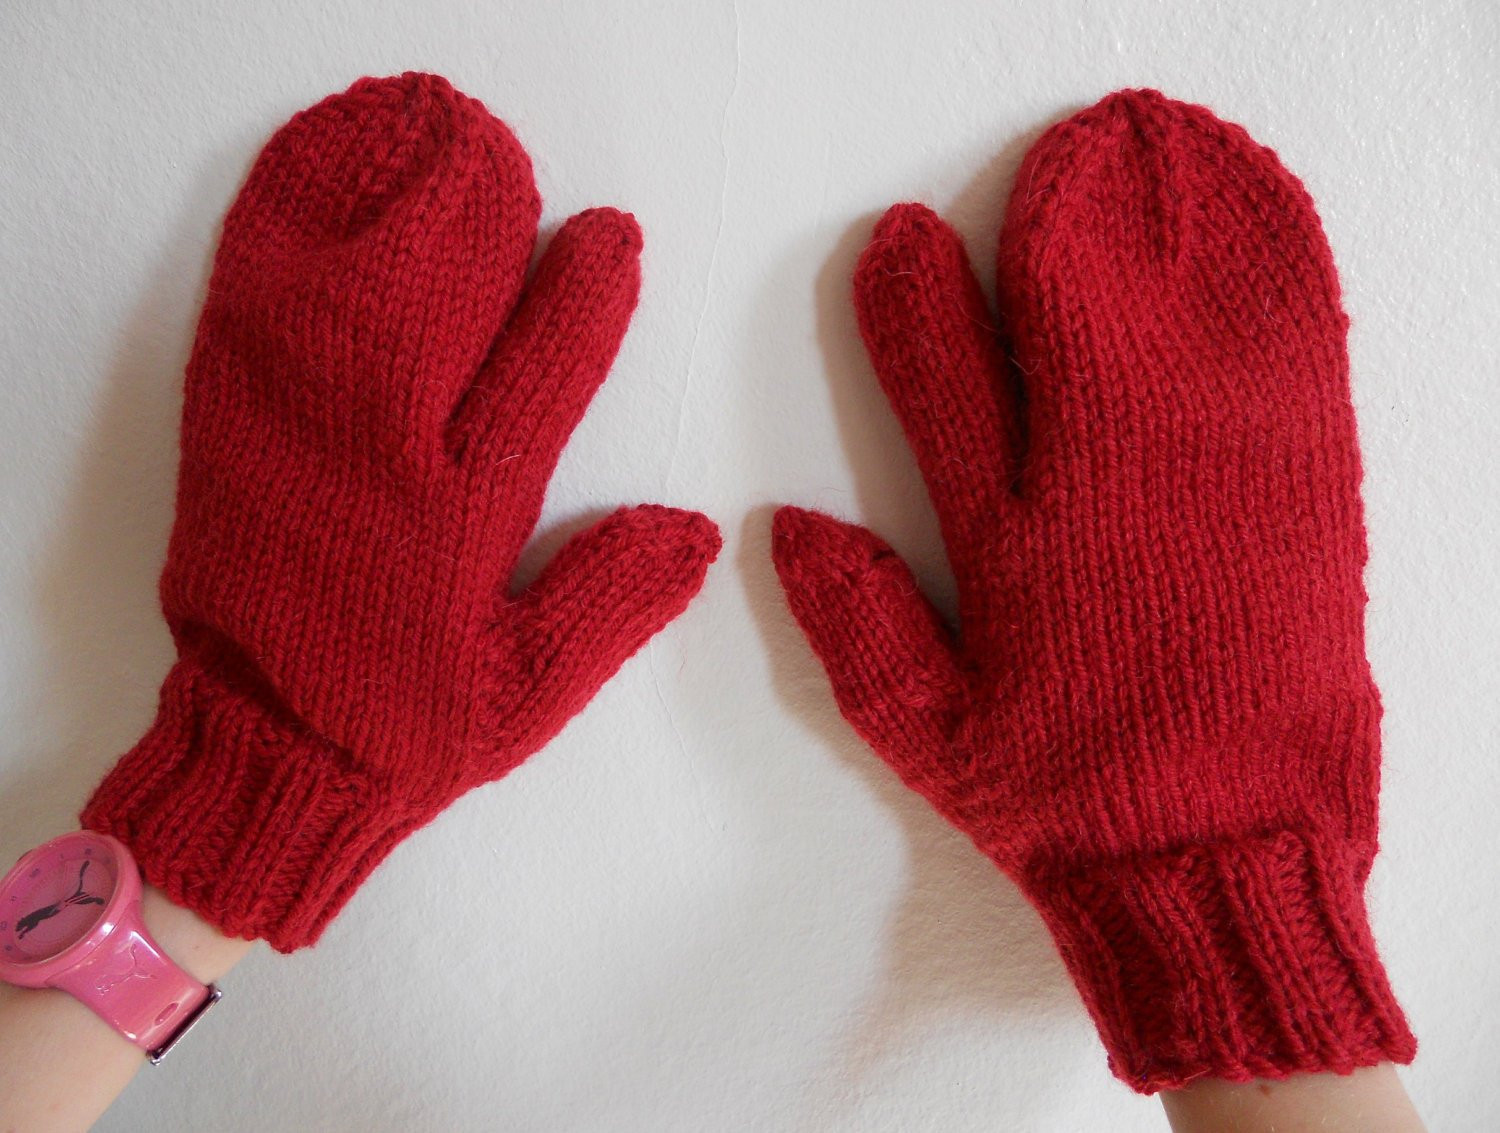 Luxury Knitting Pattern Pdf Trigger Finger Mittens for Men and Crochet Gloves with Fingers Of Brilliant 50 Pics Crochet Gloves with Fingers